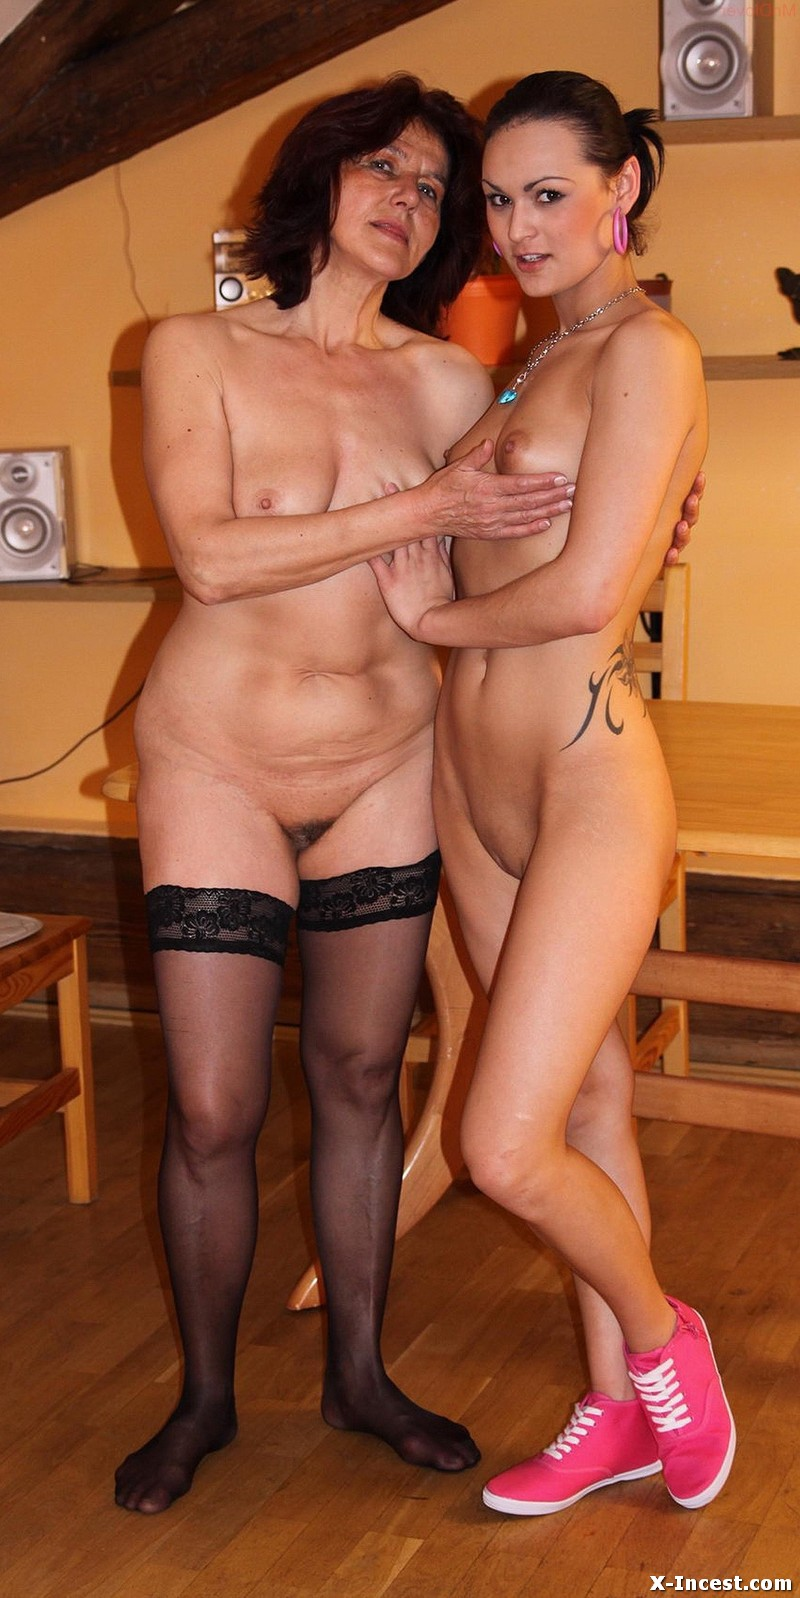 les vid mother and daughter inces seduce